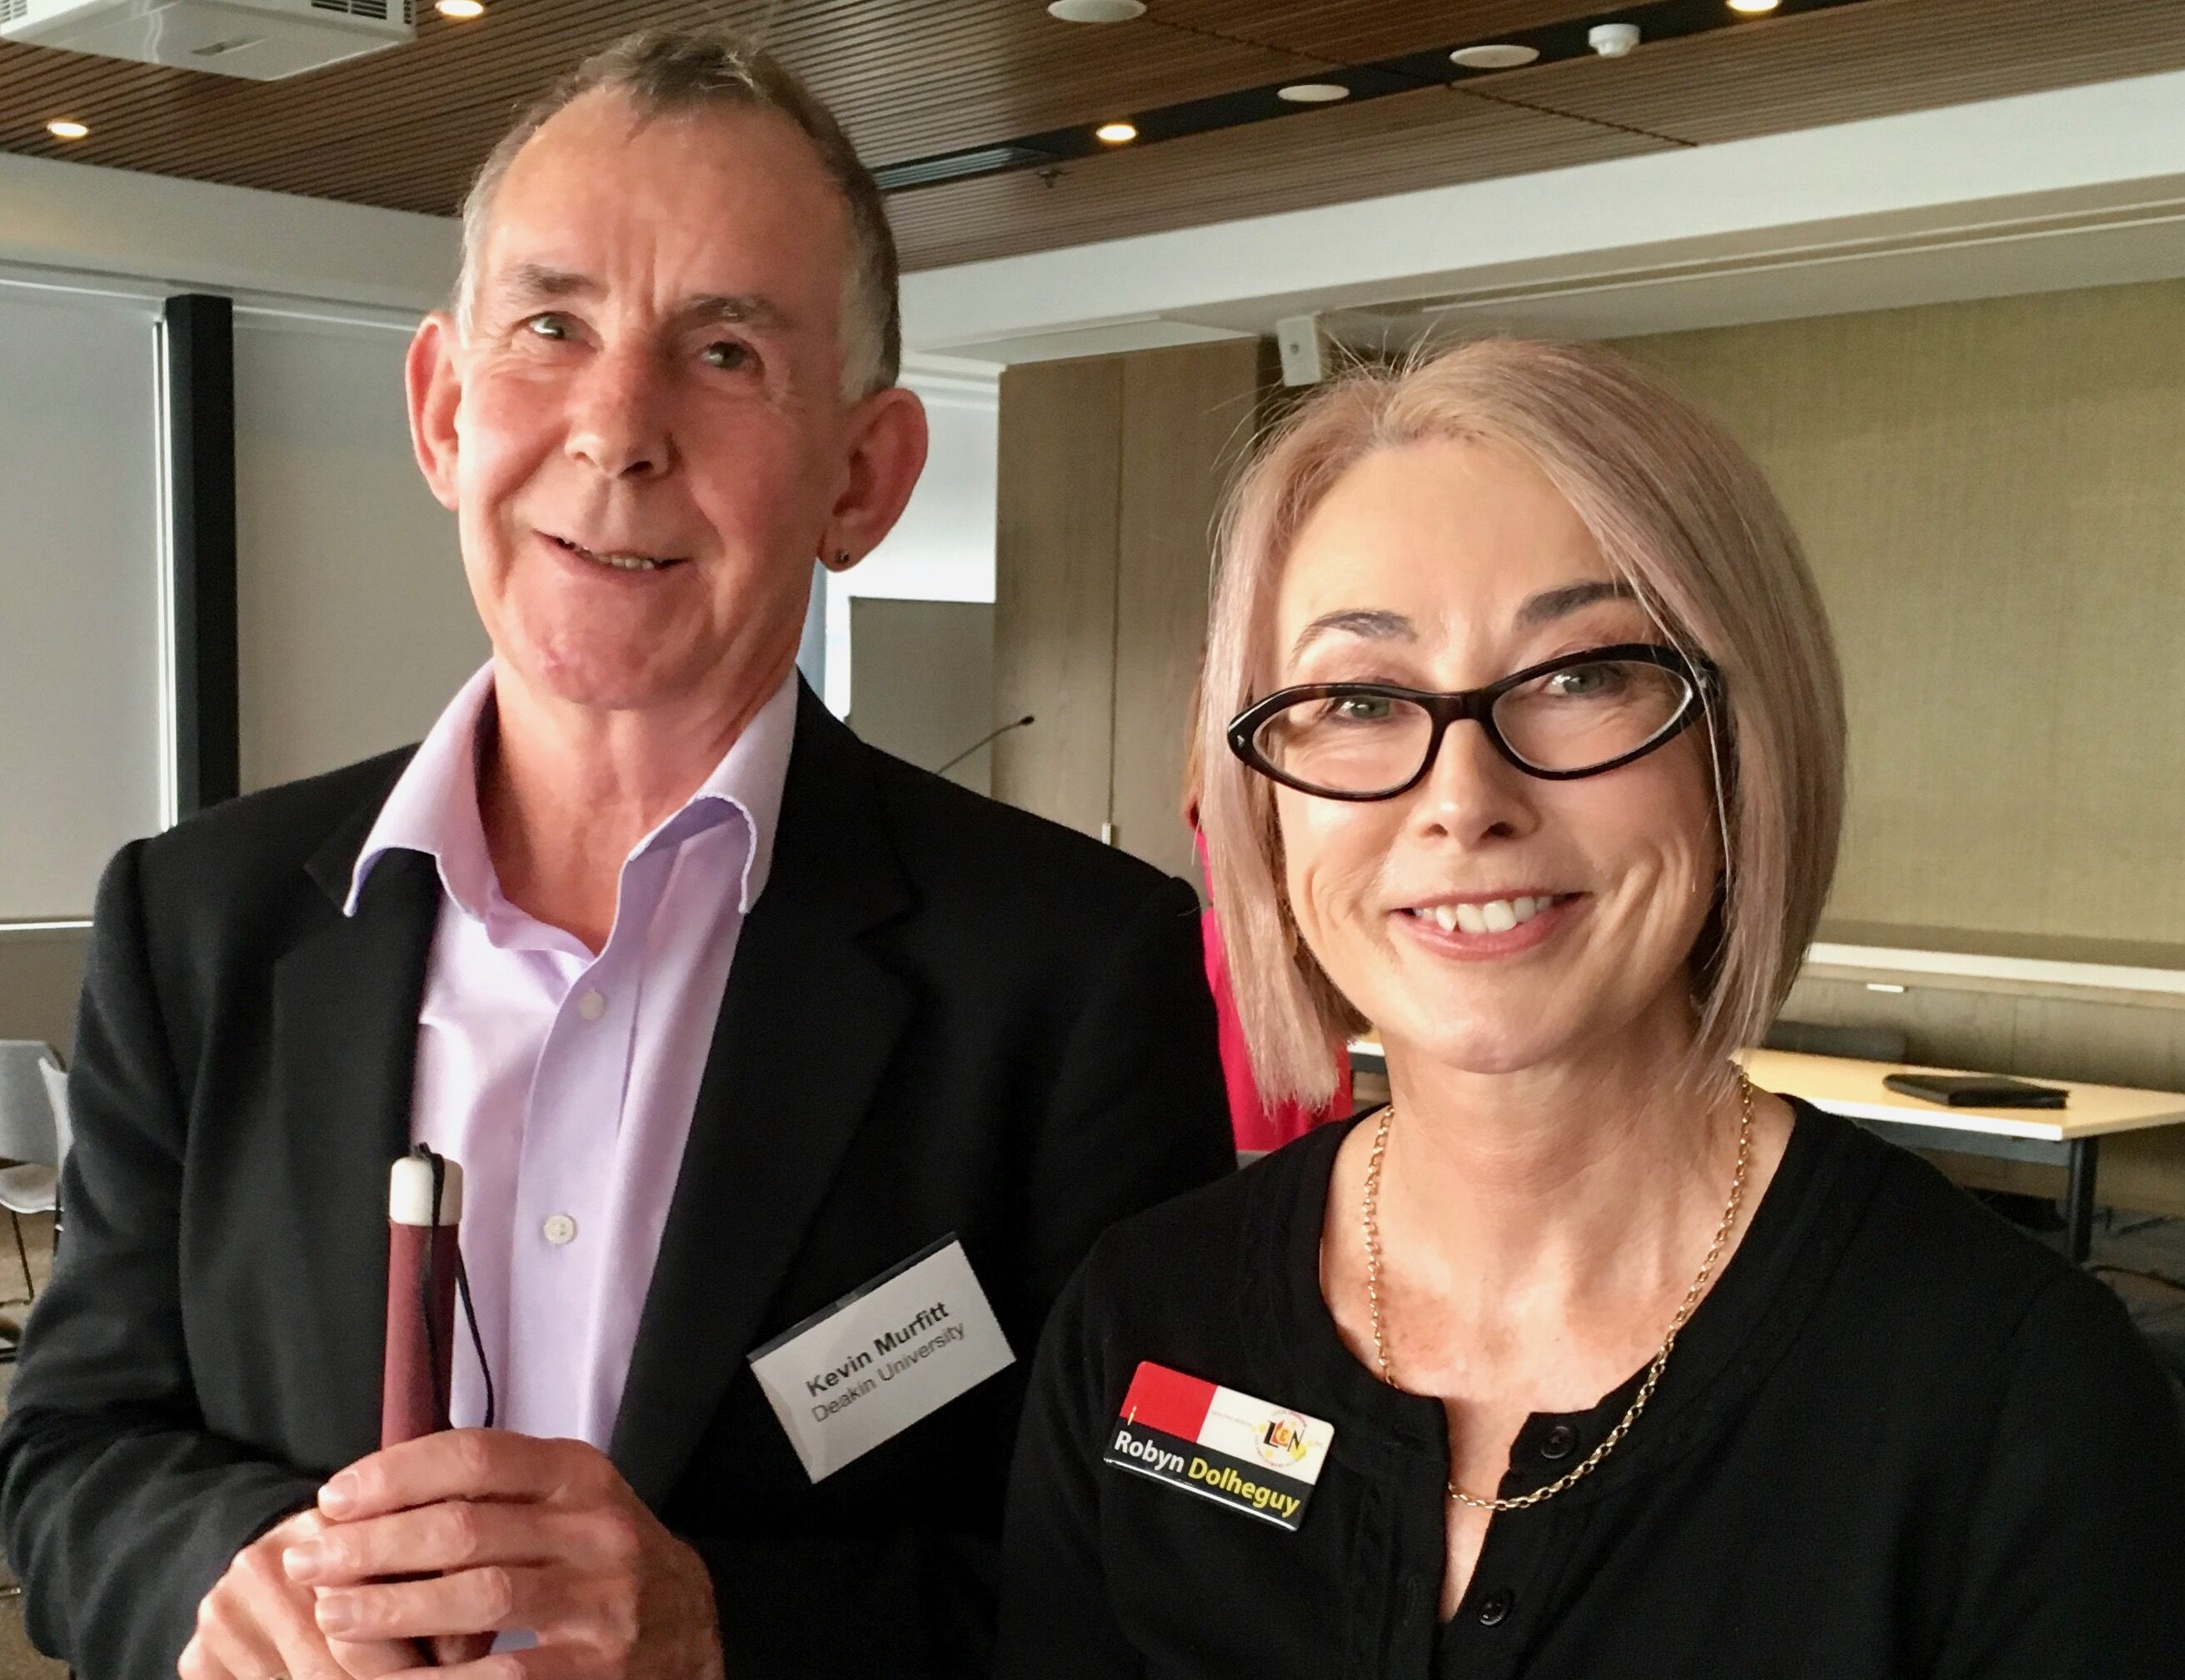 Kevin Murfitt, Deakin University & Robyn Dolheguy, Geelong LLEN standing together smiling at the camera